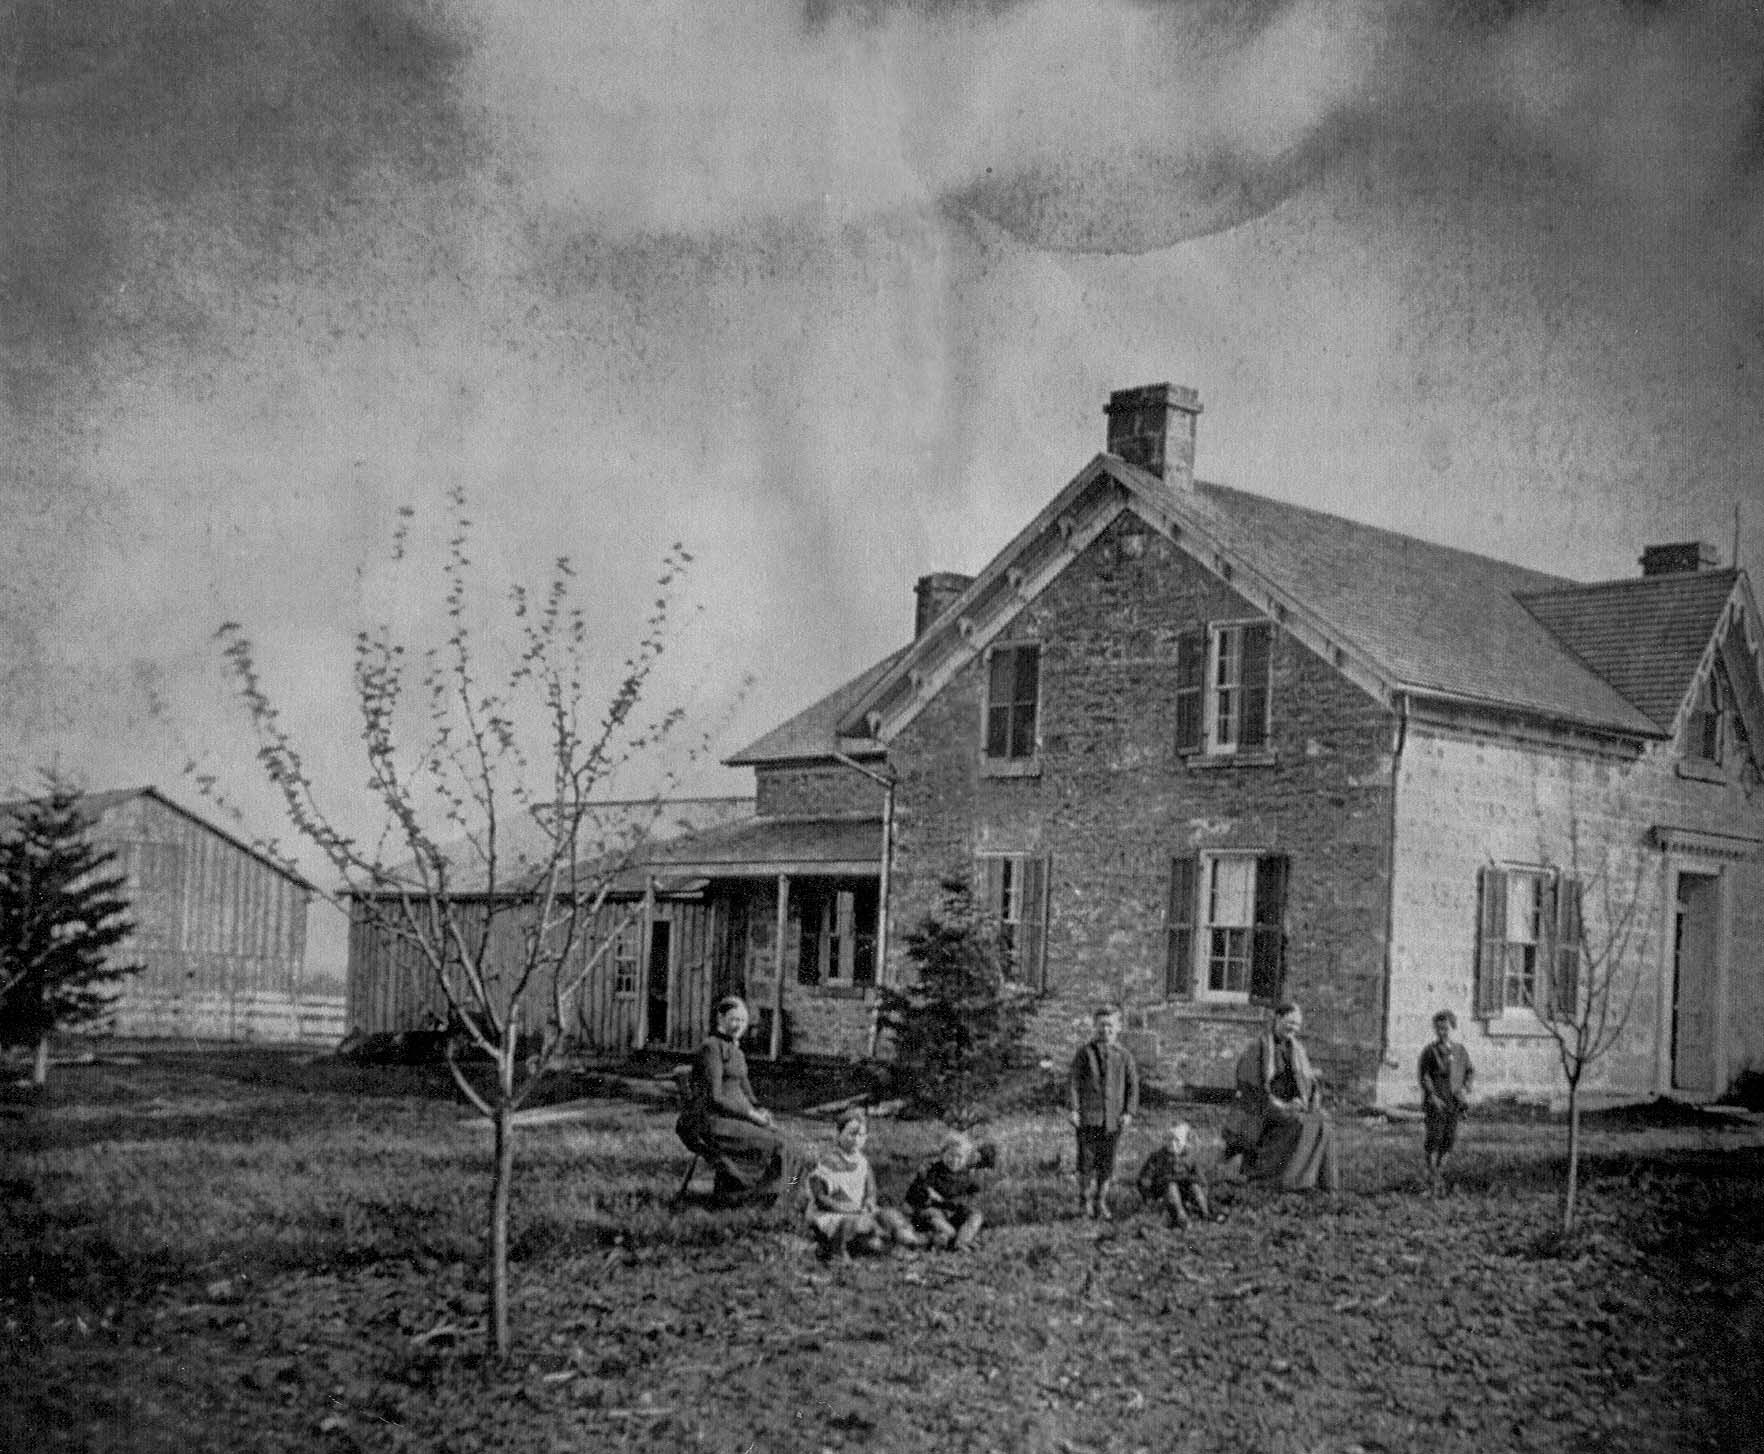 Historic Photo of Sharon's House bw 2.jpg